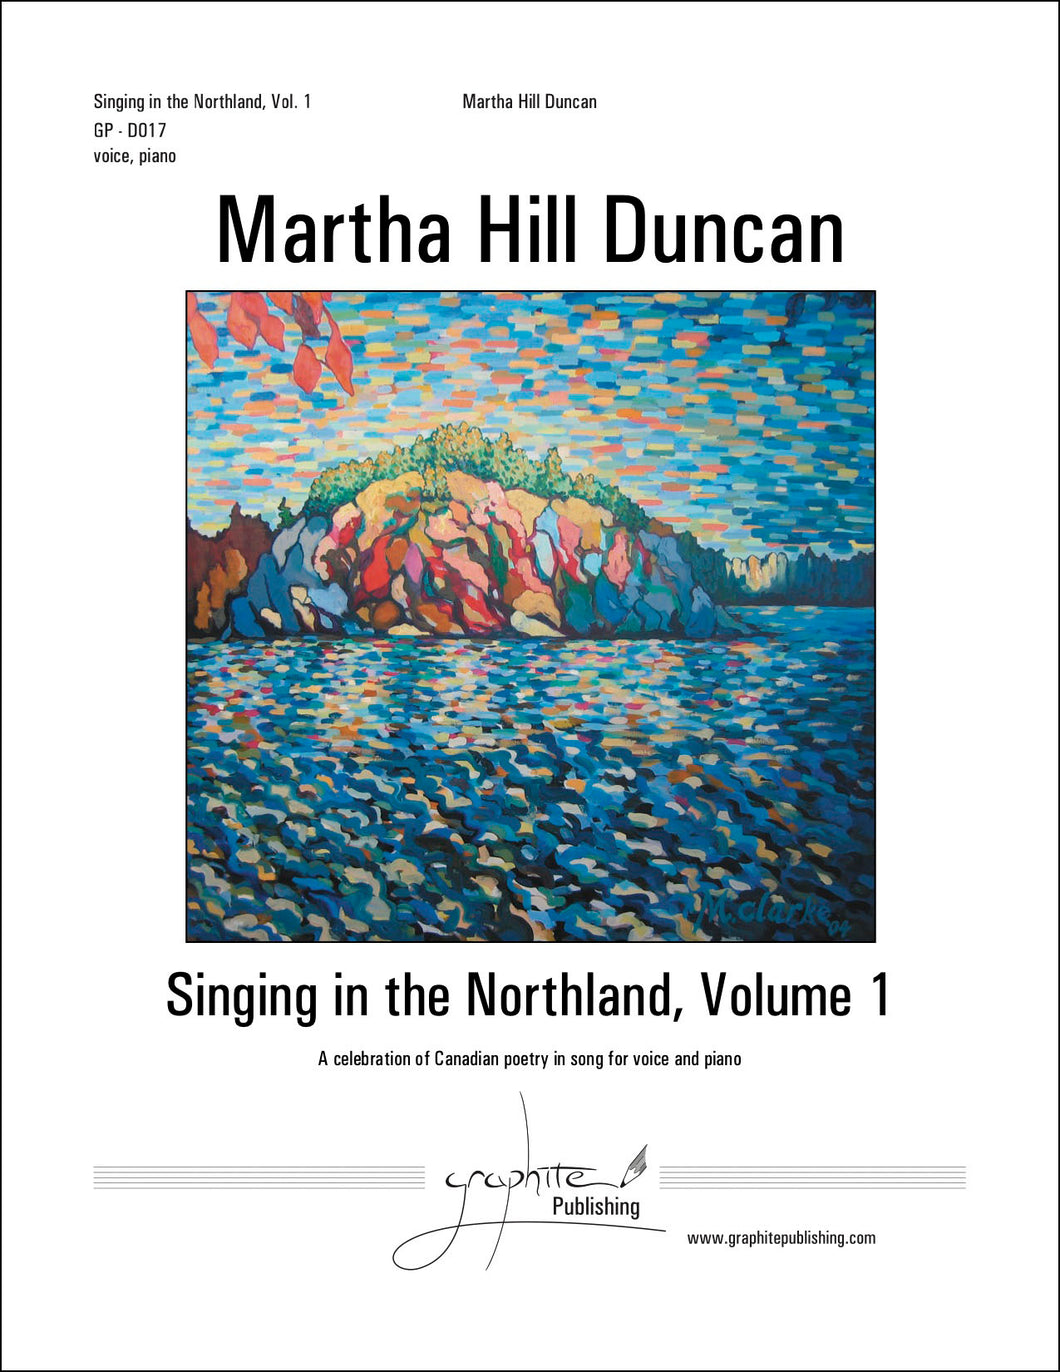 Cover Image for Singing in the Northland Volume 1